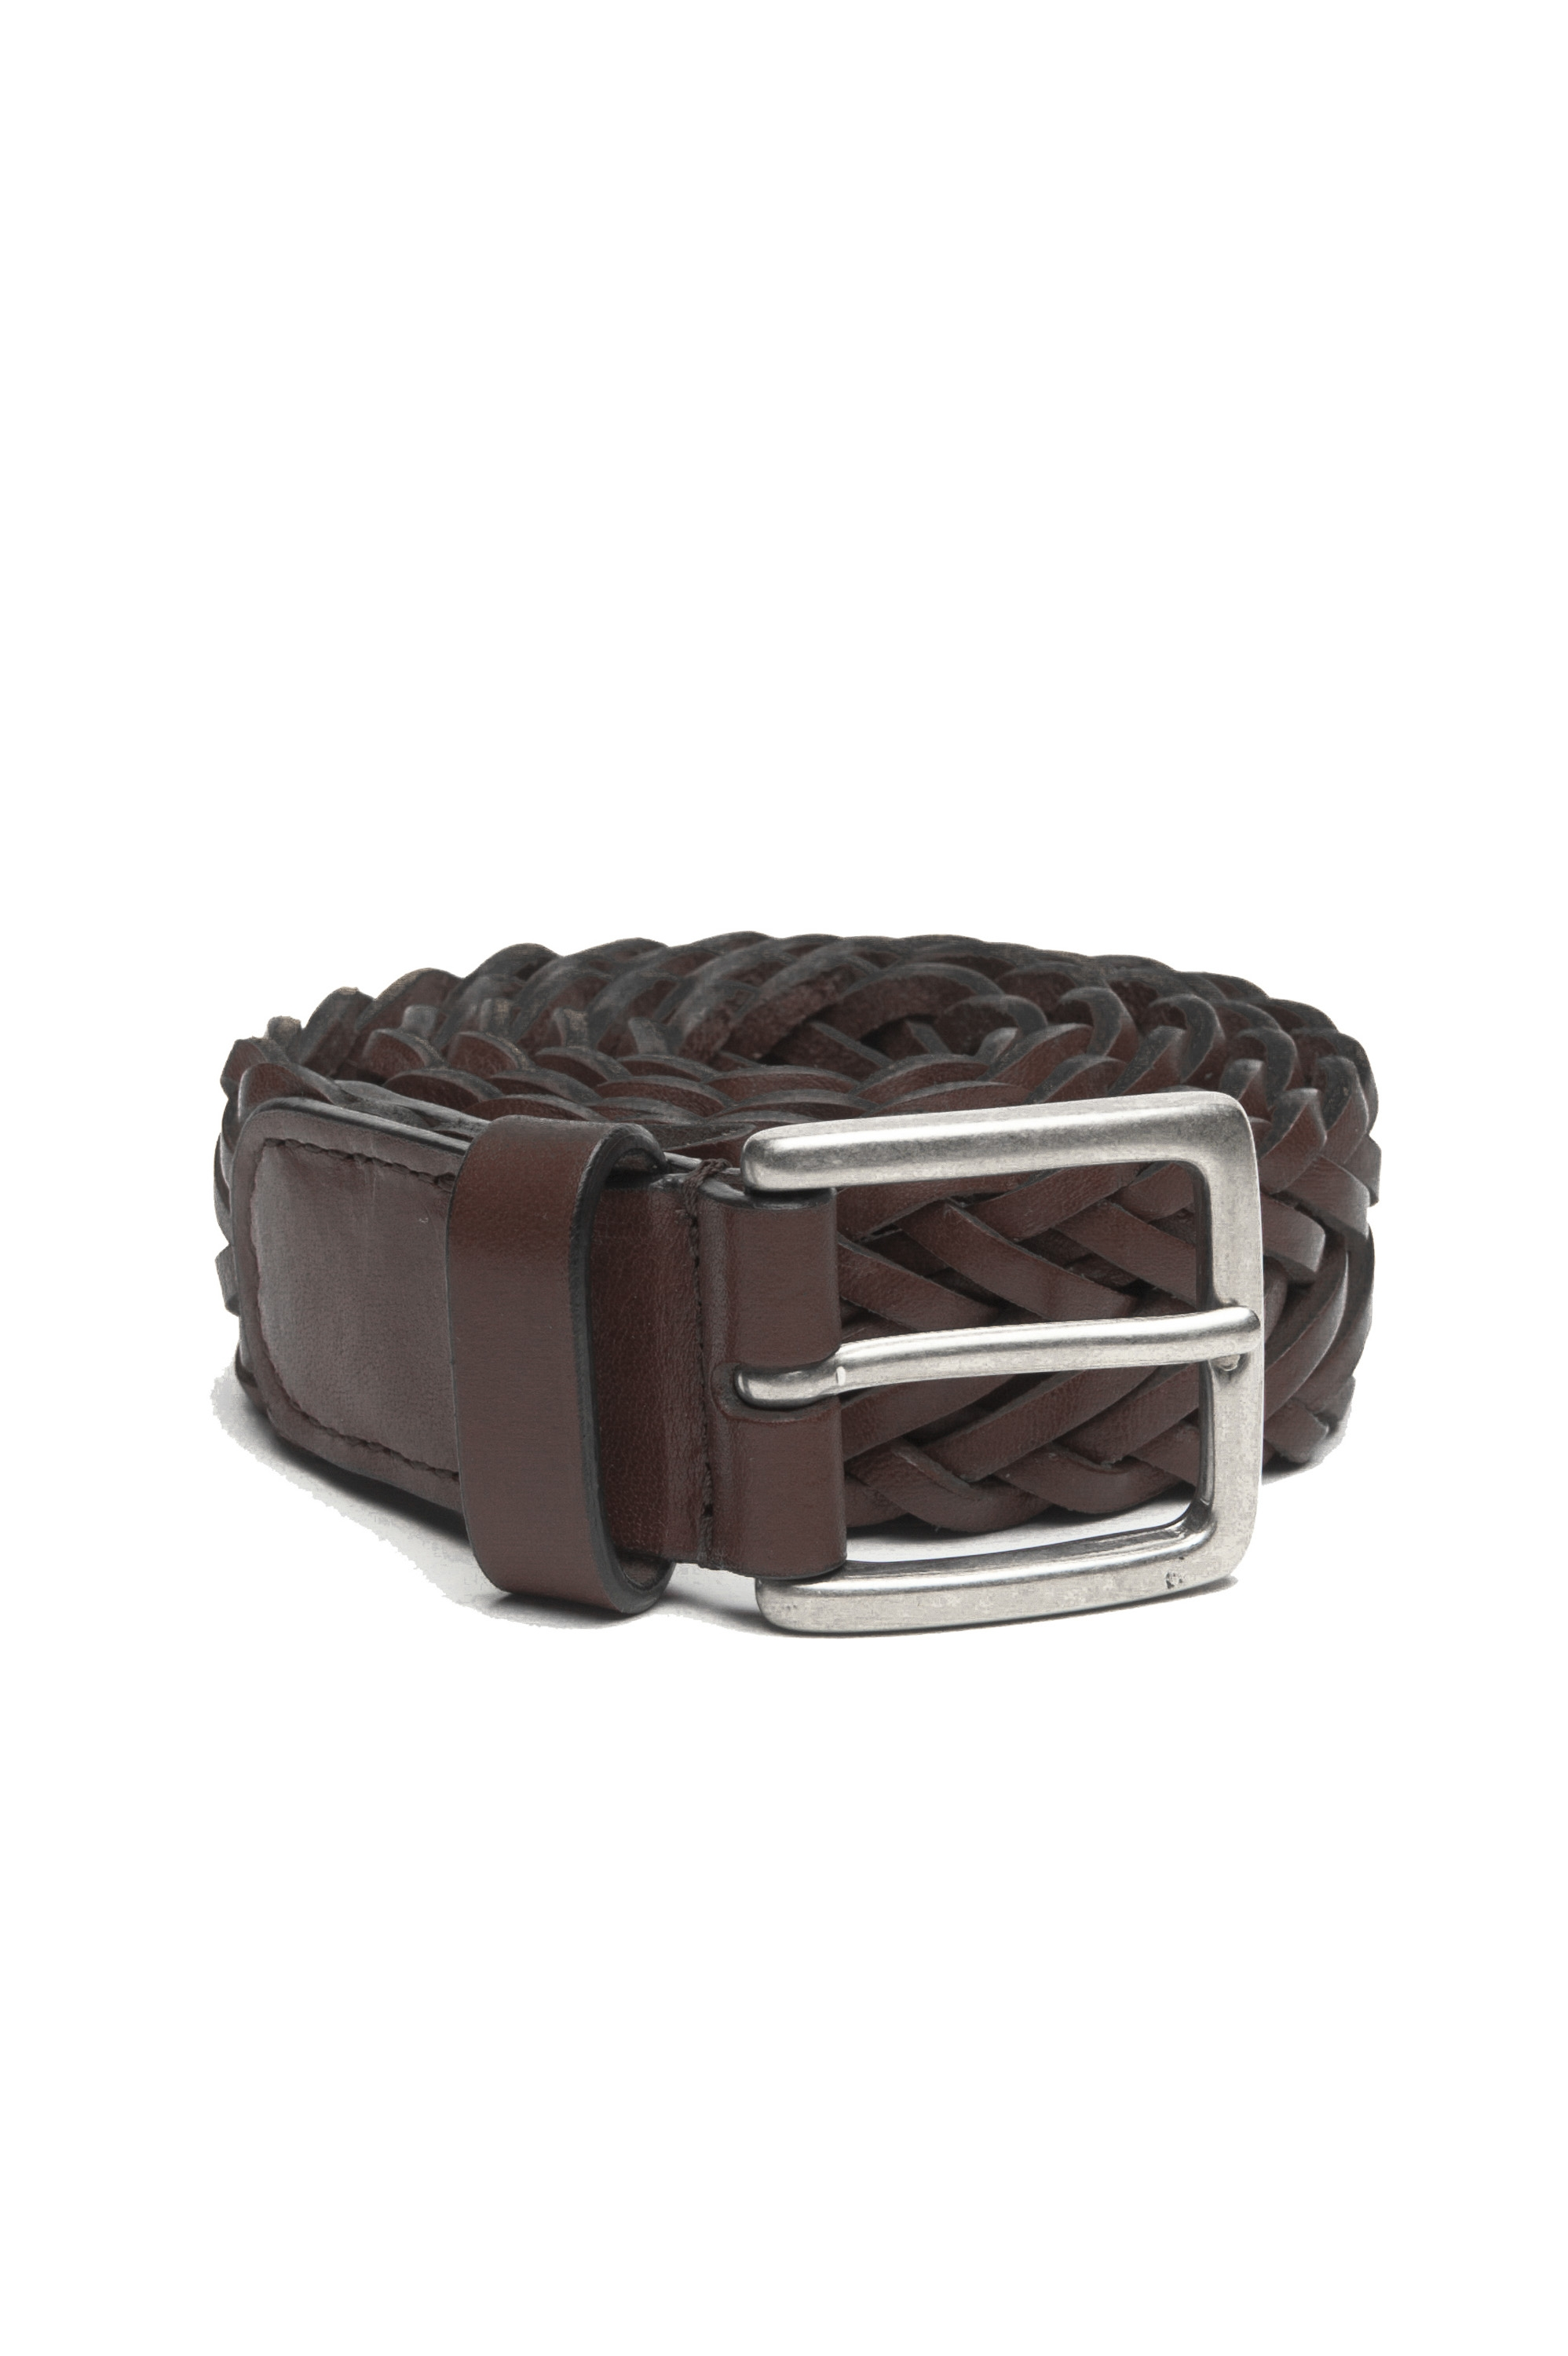 SBU 03022_2021SS Brown braided leather belt 1.4 inches  01